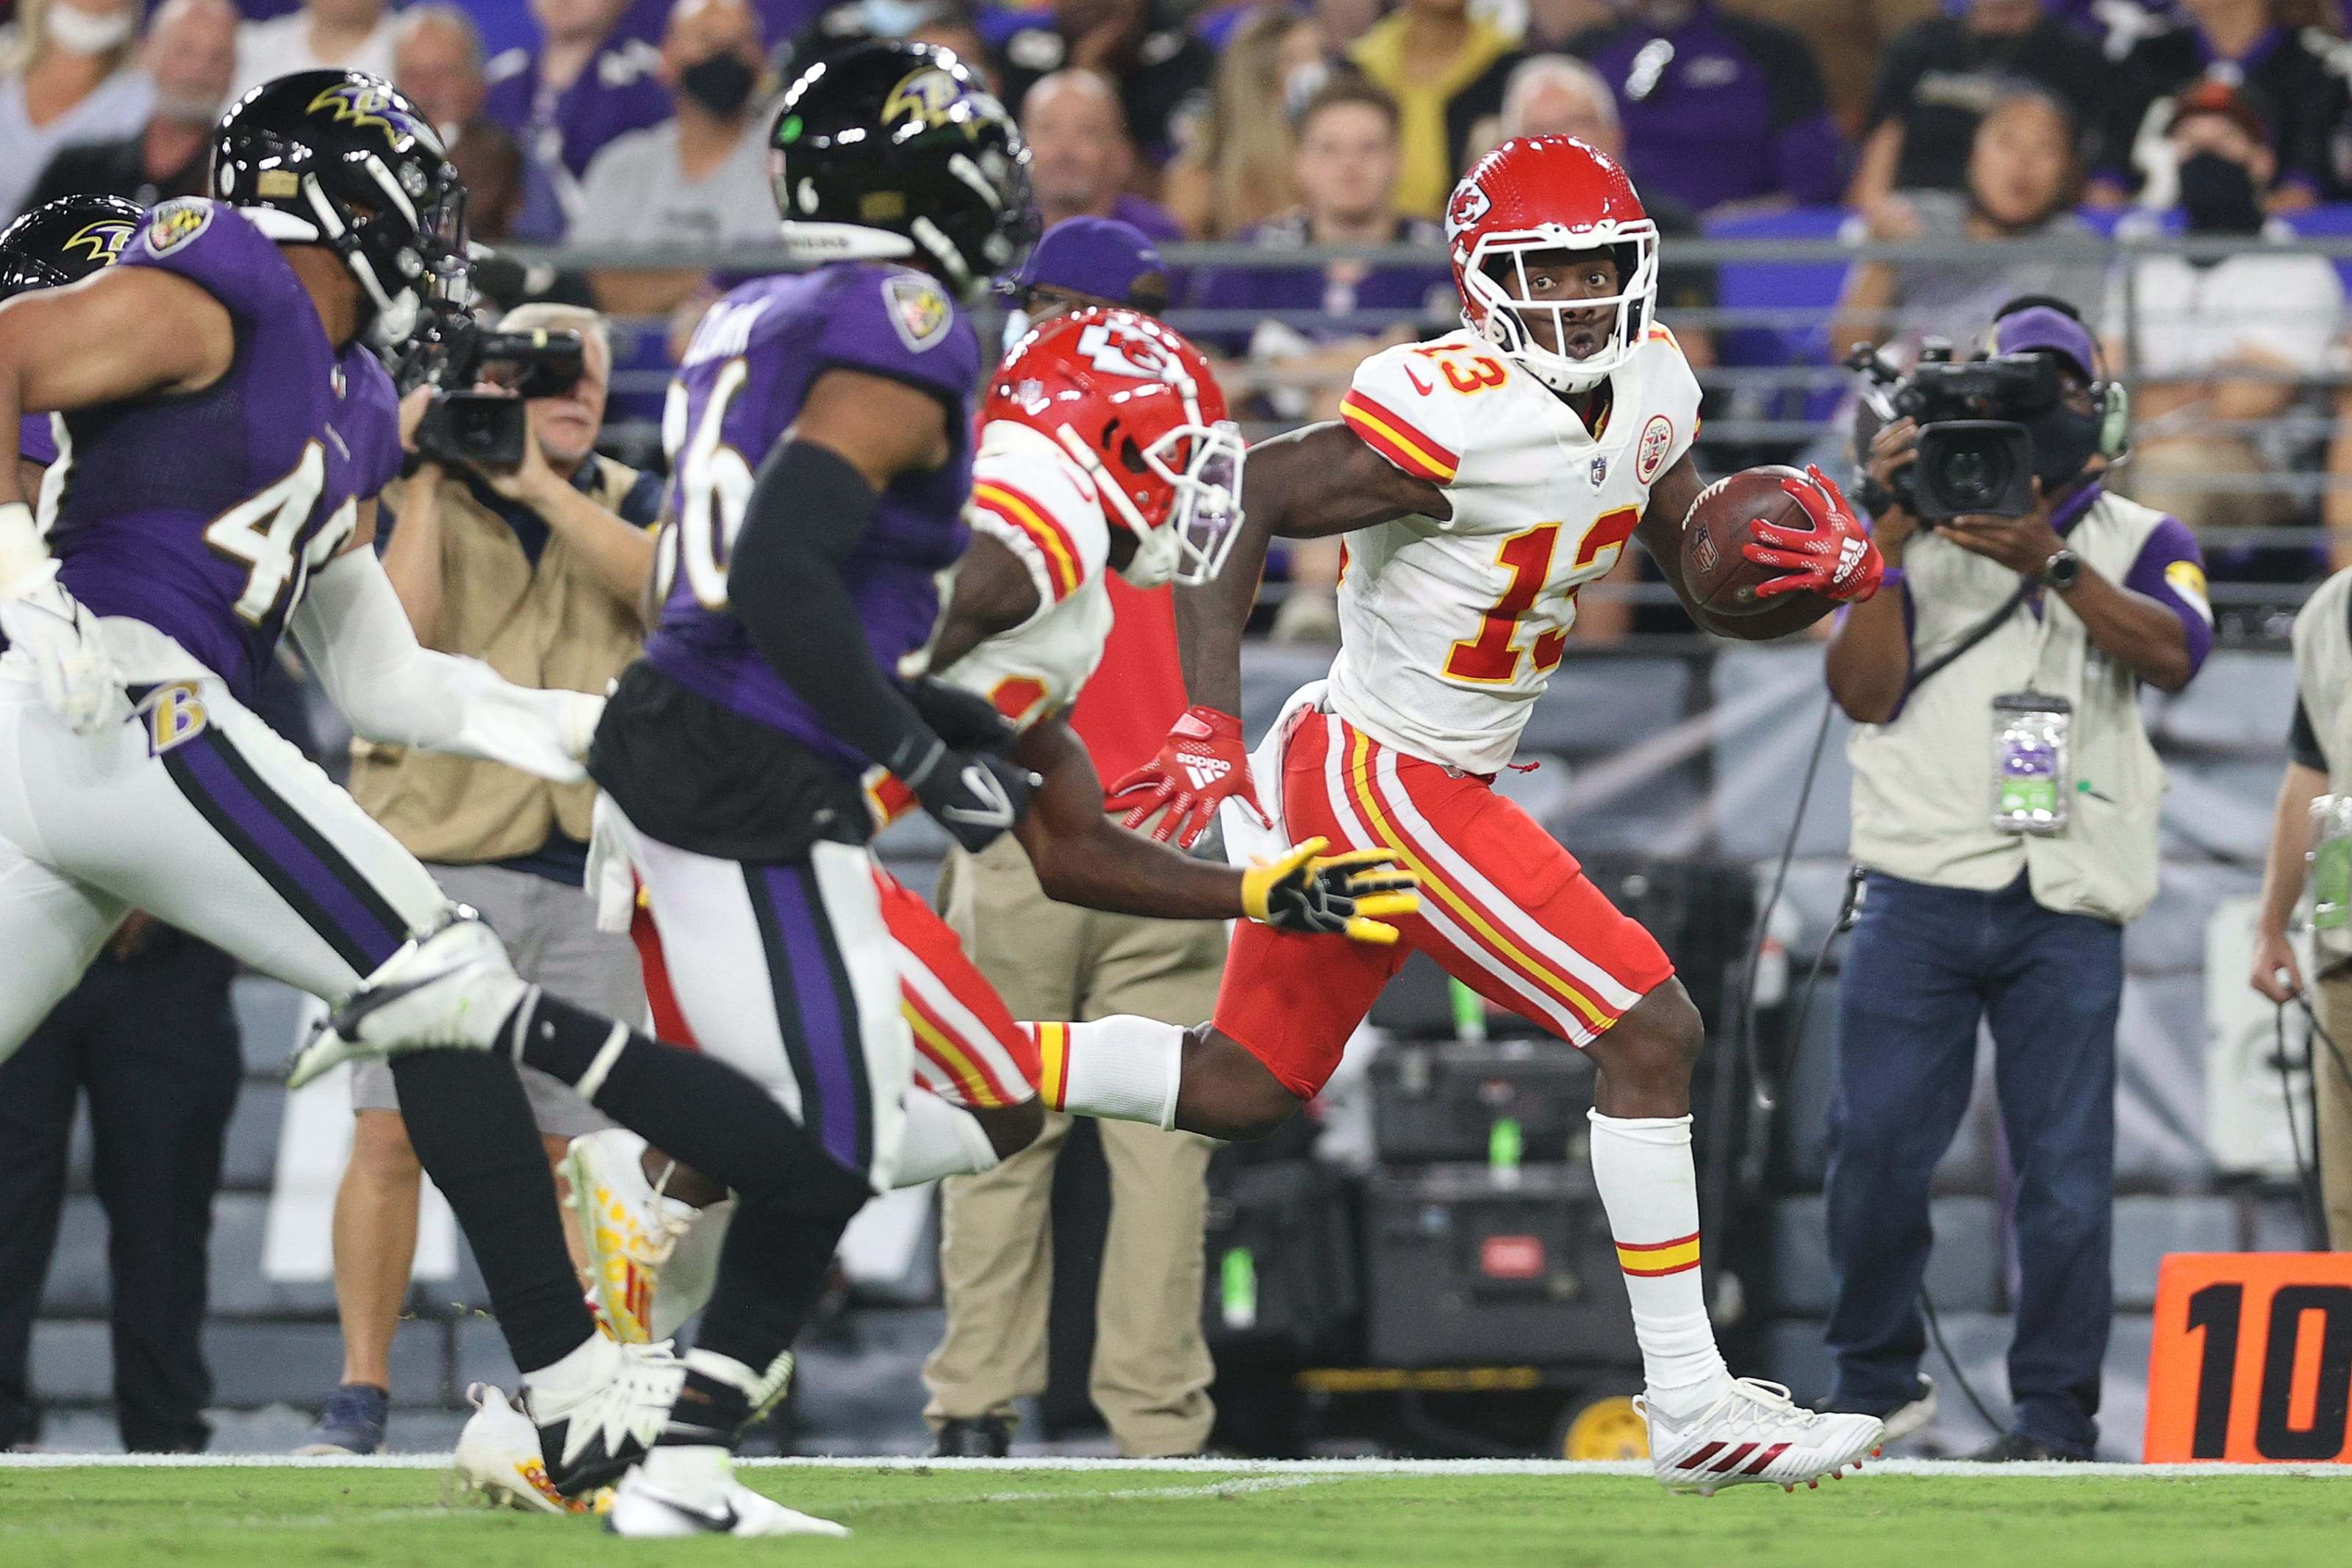 KC Chiefs vs. Ravens: Winners and losers from Week 2